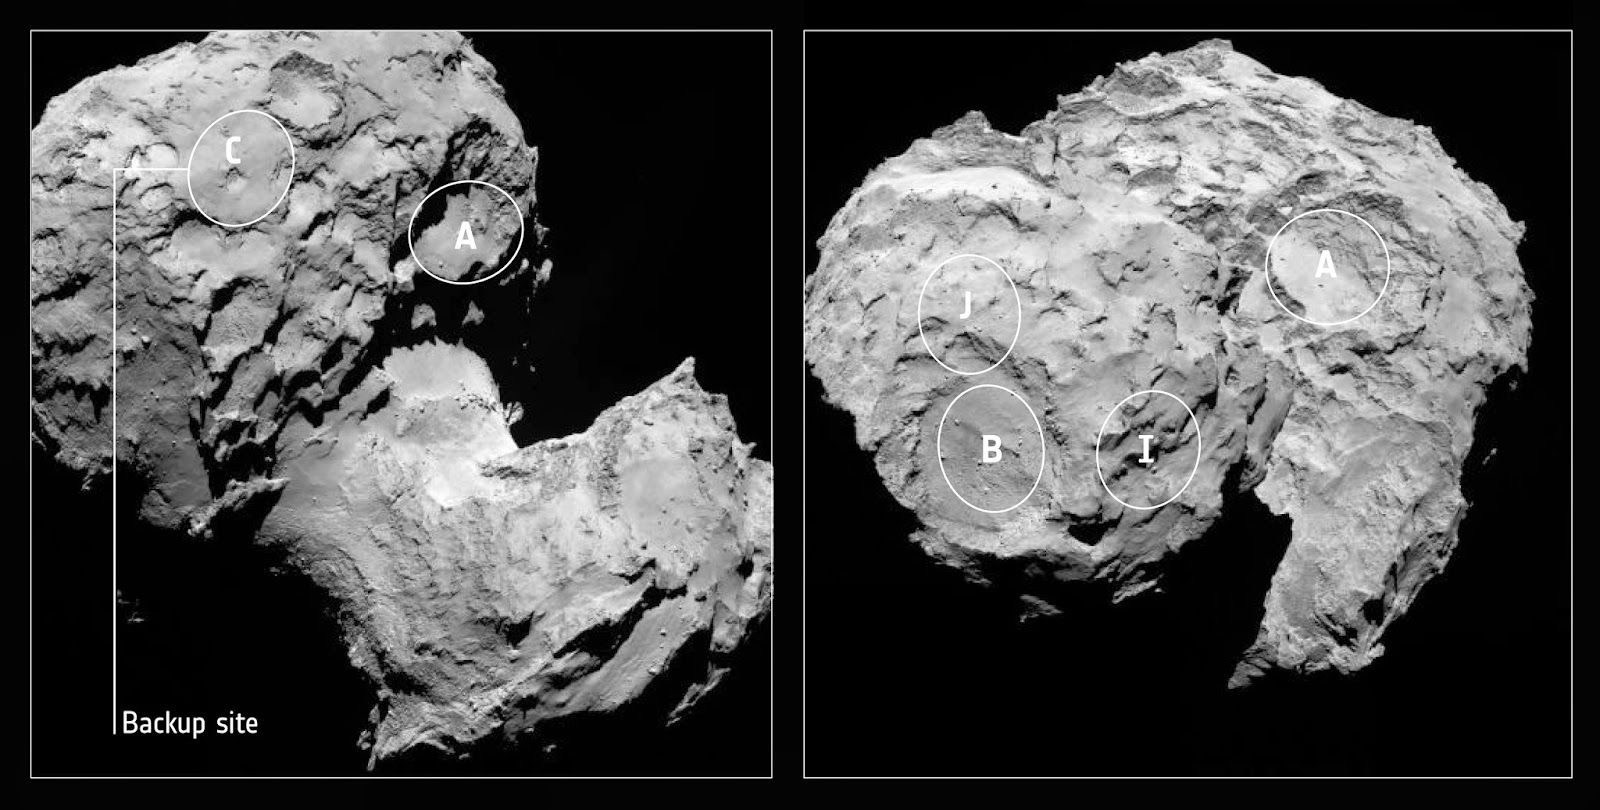 Context image of Comet 67P/Churyumov–Gerasimenko with the original five candidate landing sites for Rosetta's lander Philae, and with the backup, Site C, indicated.  The regions are marked on OSIRIS narrow-angle camera images taken on 16 August from a distance of about 100 km. The comet nucleus is about 4 km across.  The sites were assigned a letter from an original preselection of 10 possible sites identified A to J. The lettering scheme does not signify any ranking. On 13 September, Site J was chosen as the primary, with Site C as the backup. Credit: ESA/Rosetta/MPS for OSIRIS Team MPS/UPD/LAM/IAA/SSO/INTA/UPM/DASP/IDA